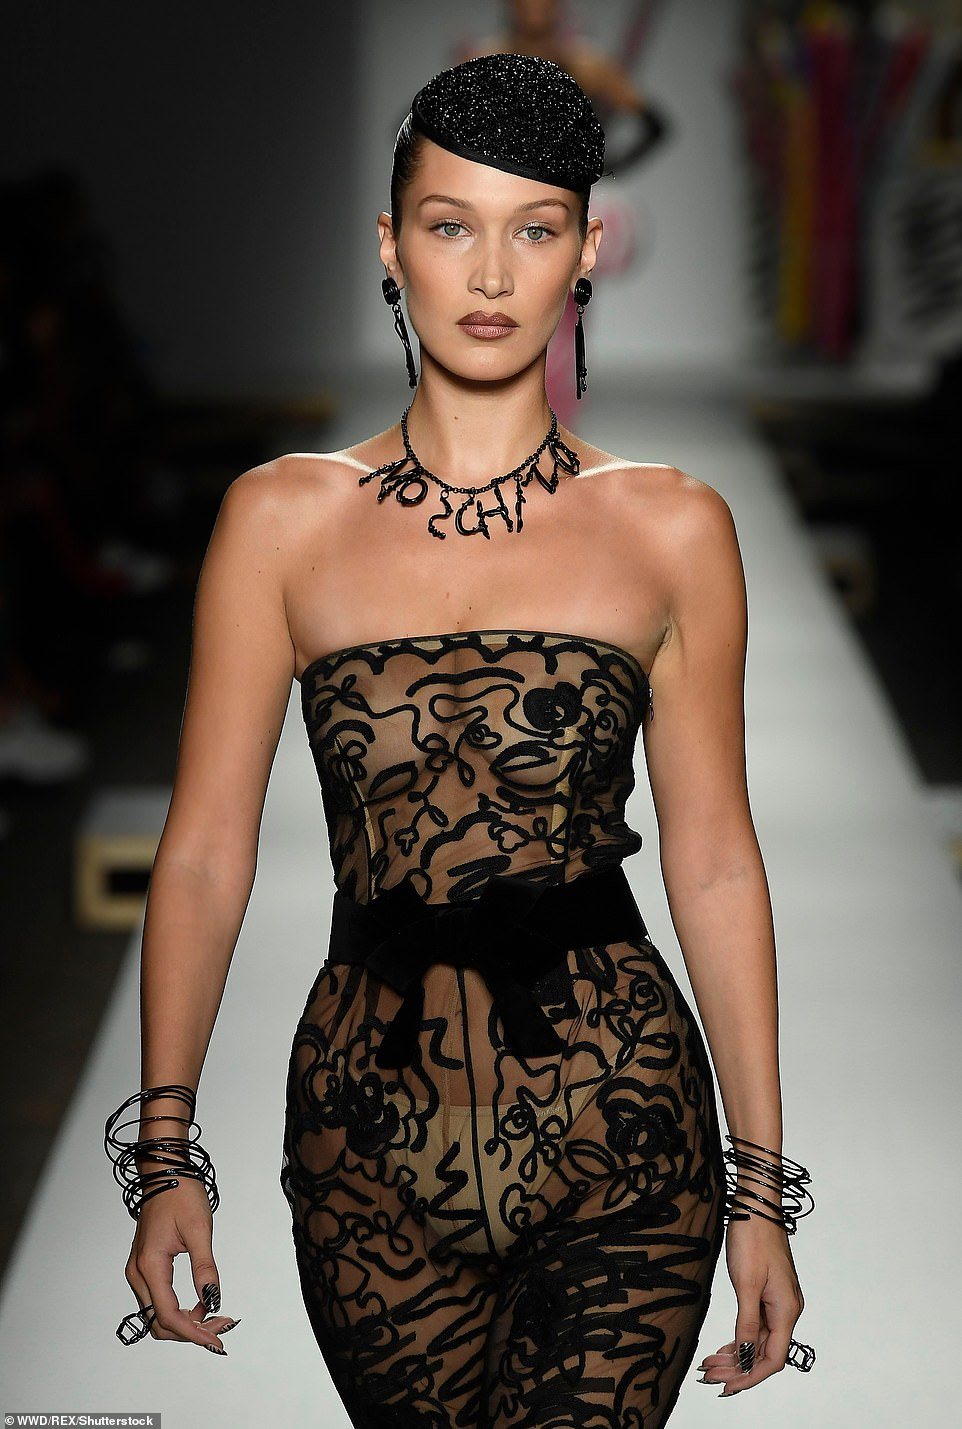 Braless photos of Bella Hadid at bonkers Moschino MFW show